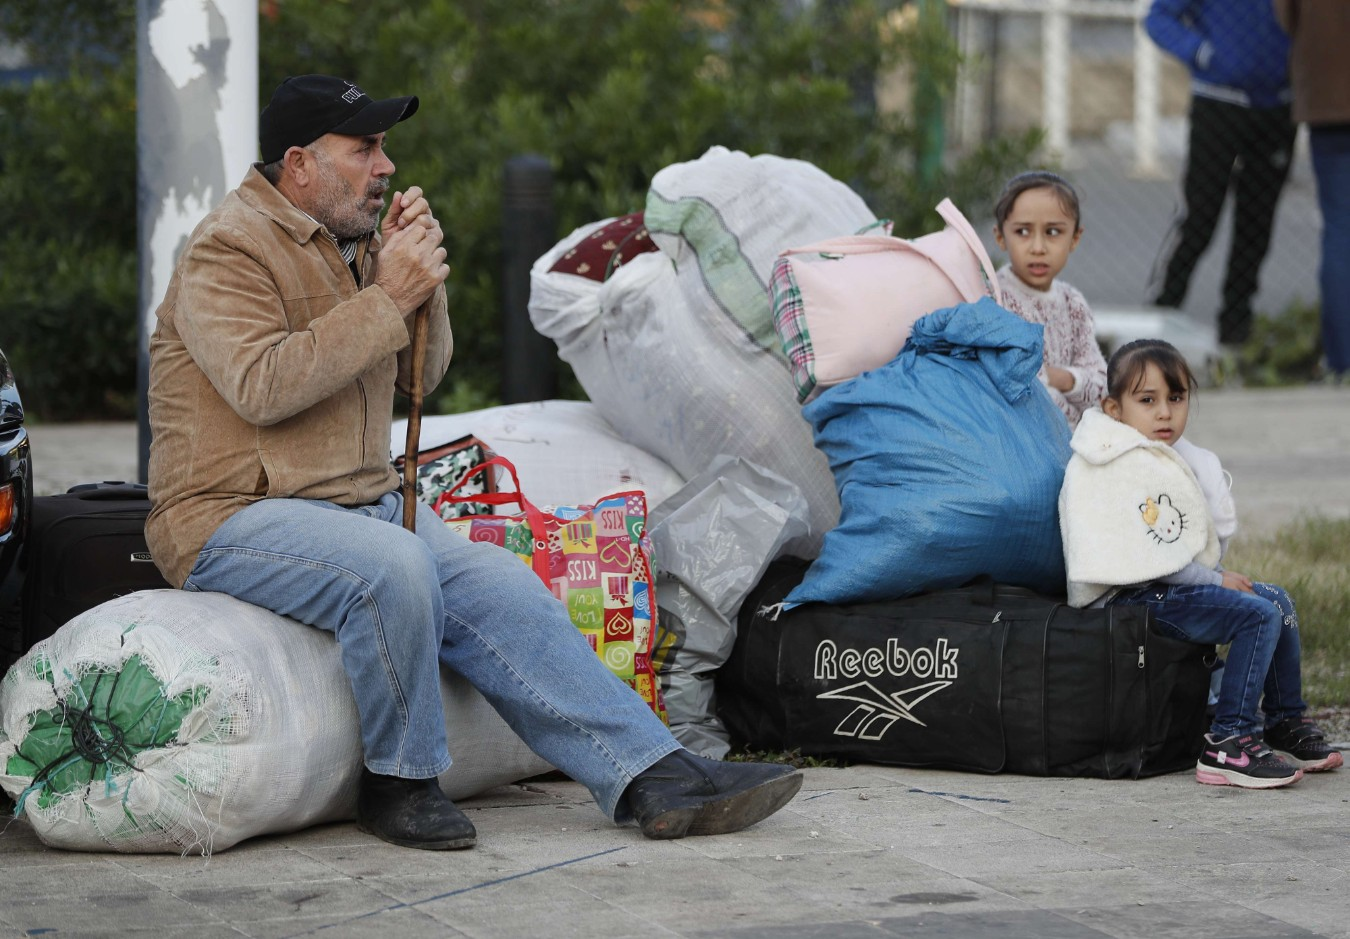 A Syrian refugee sits next to his belongings as he waits to board a bus to take him home to Syria, in Beirut, Lebanon, Tuesday, Dec. 3, 2019. (AP)